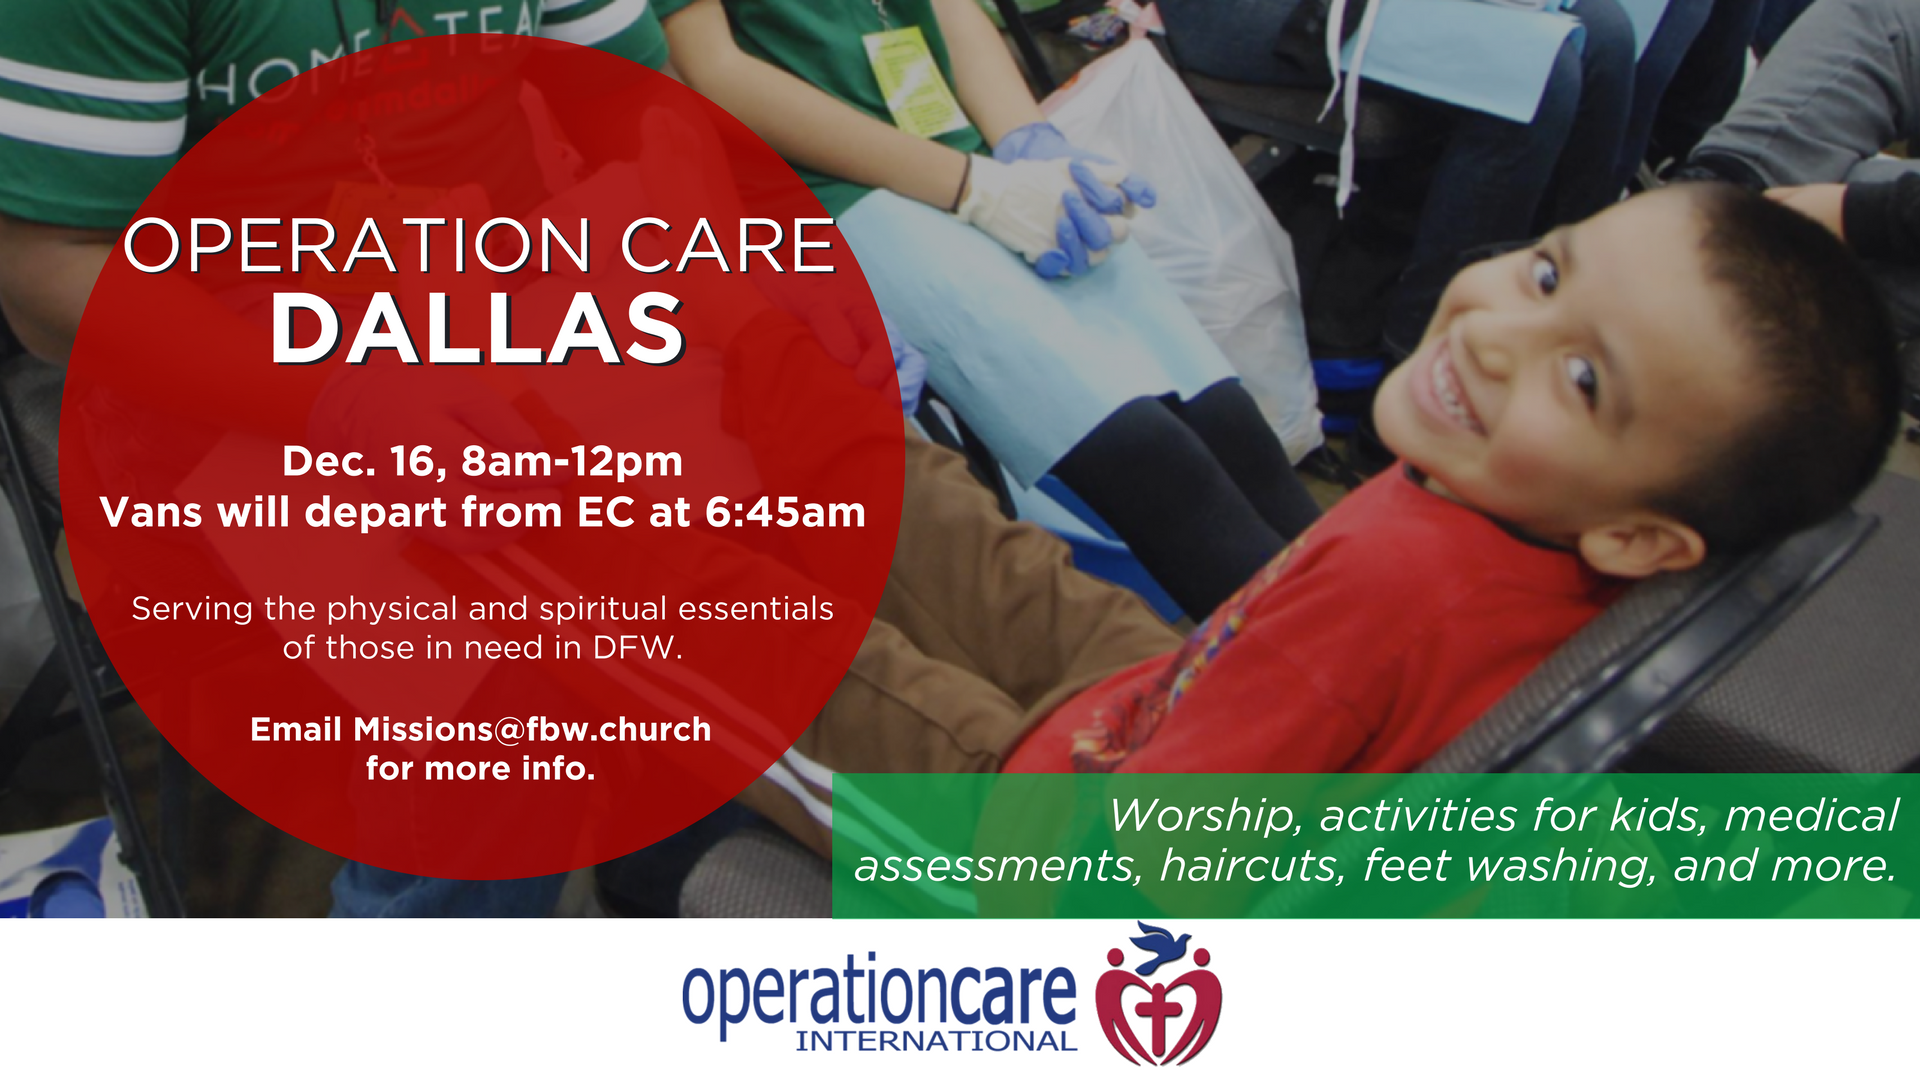 Operation care dallas 12.15